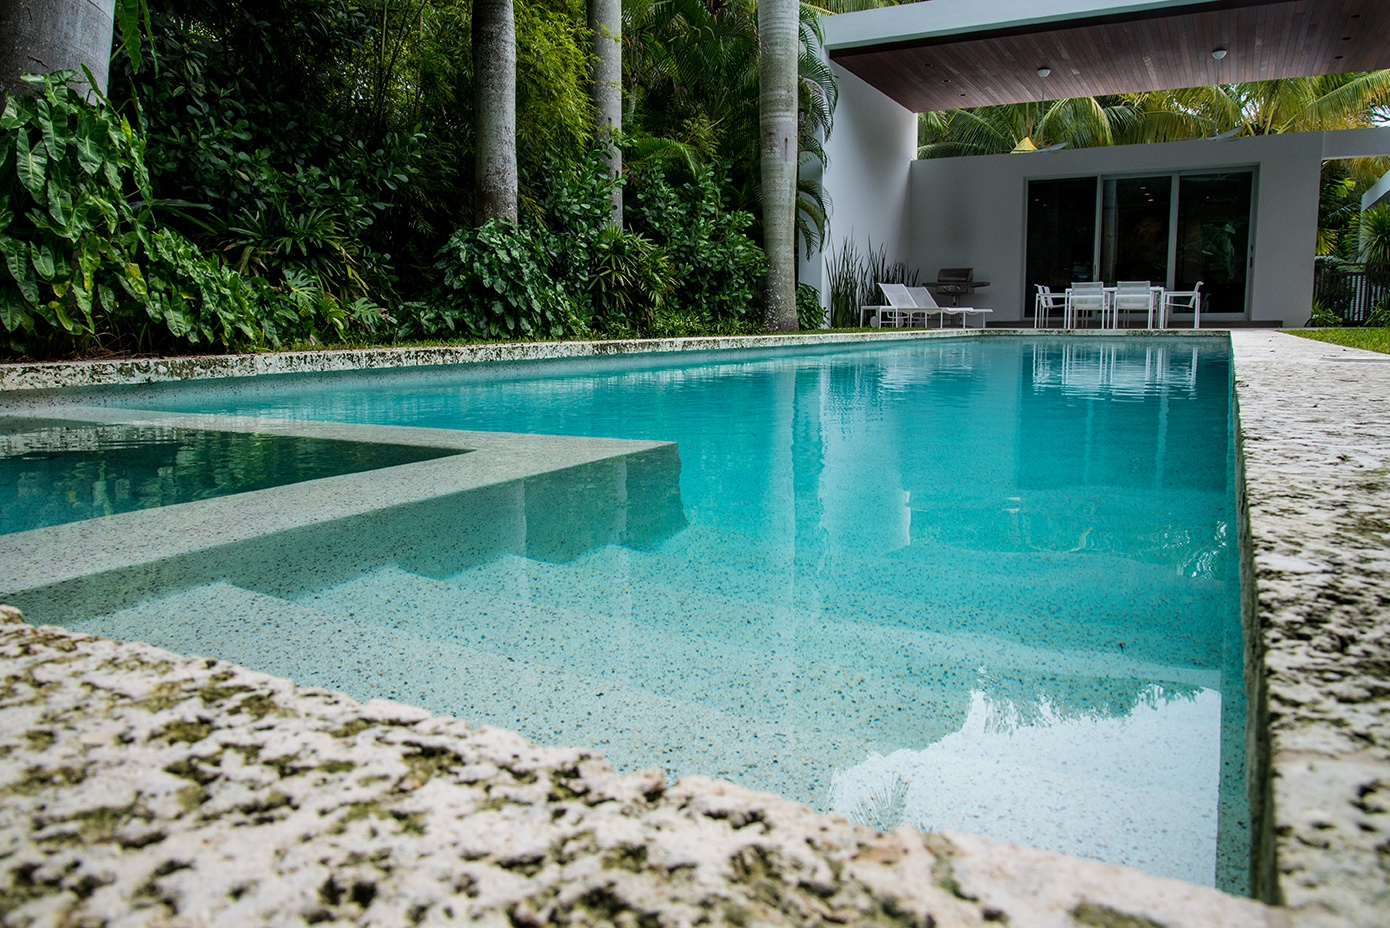 How Much Does Pool Maintenance Cost Per Month in South Florida?